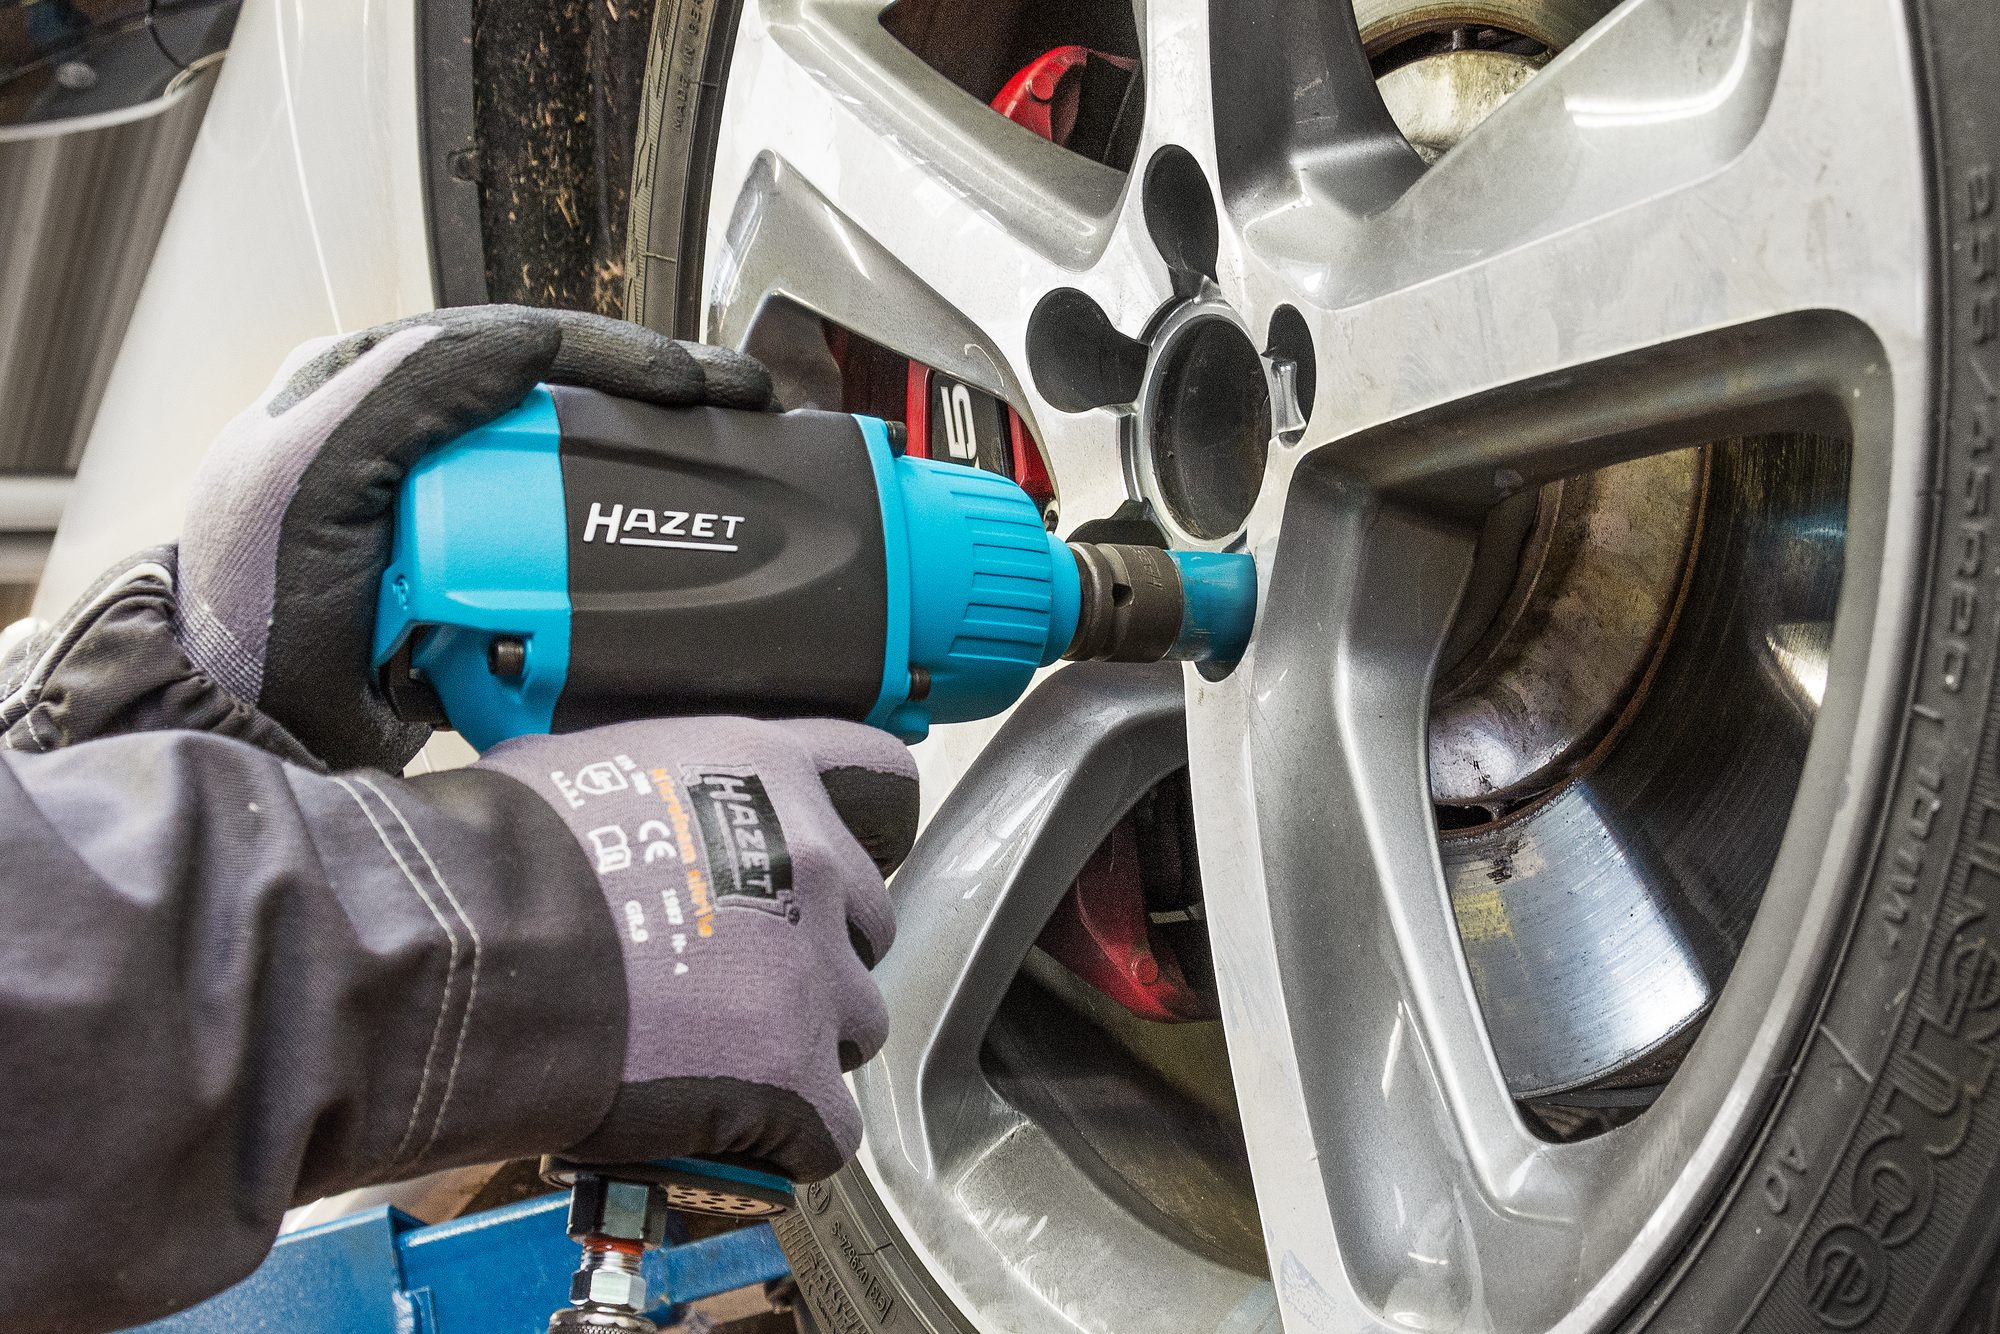 Two new impact wrenches from HAZET